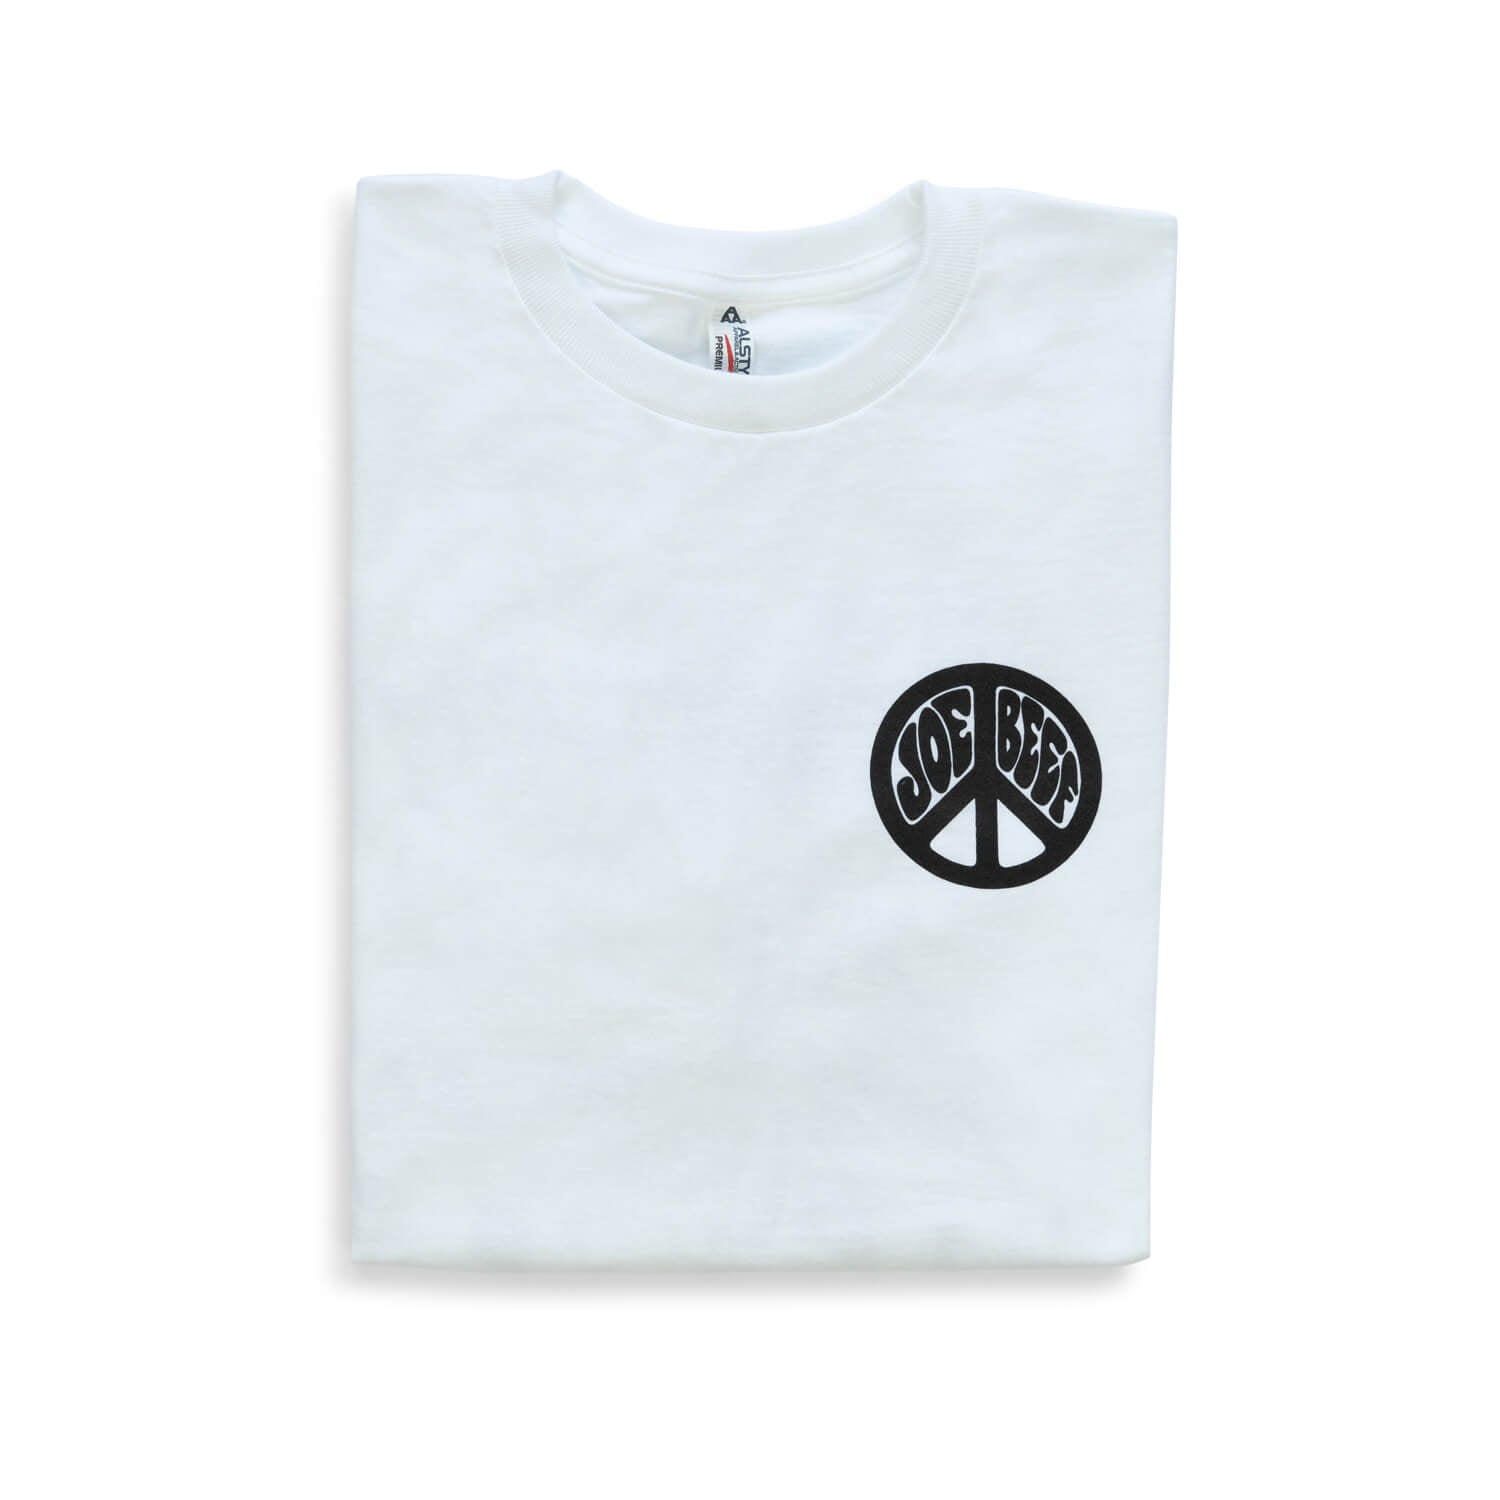 Joe Beef Hippie T-Shirt (White)